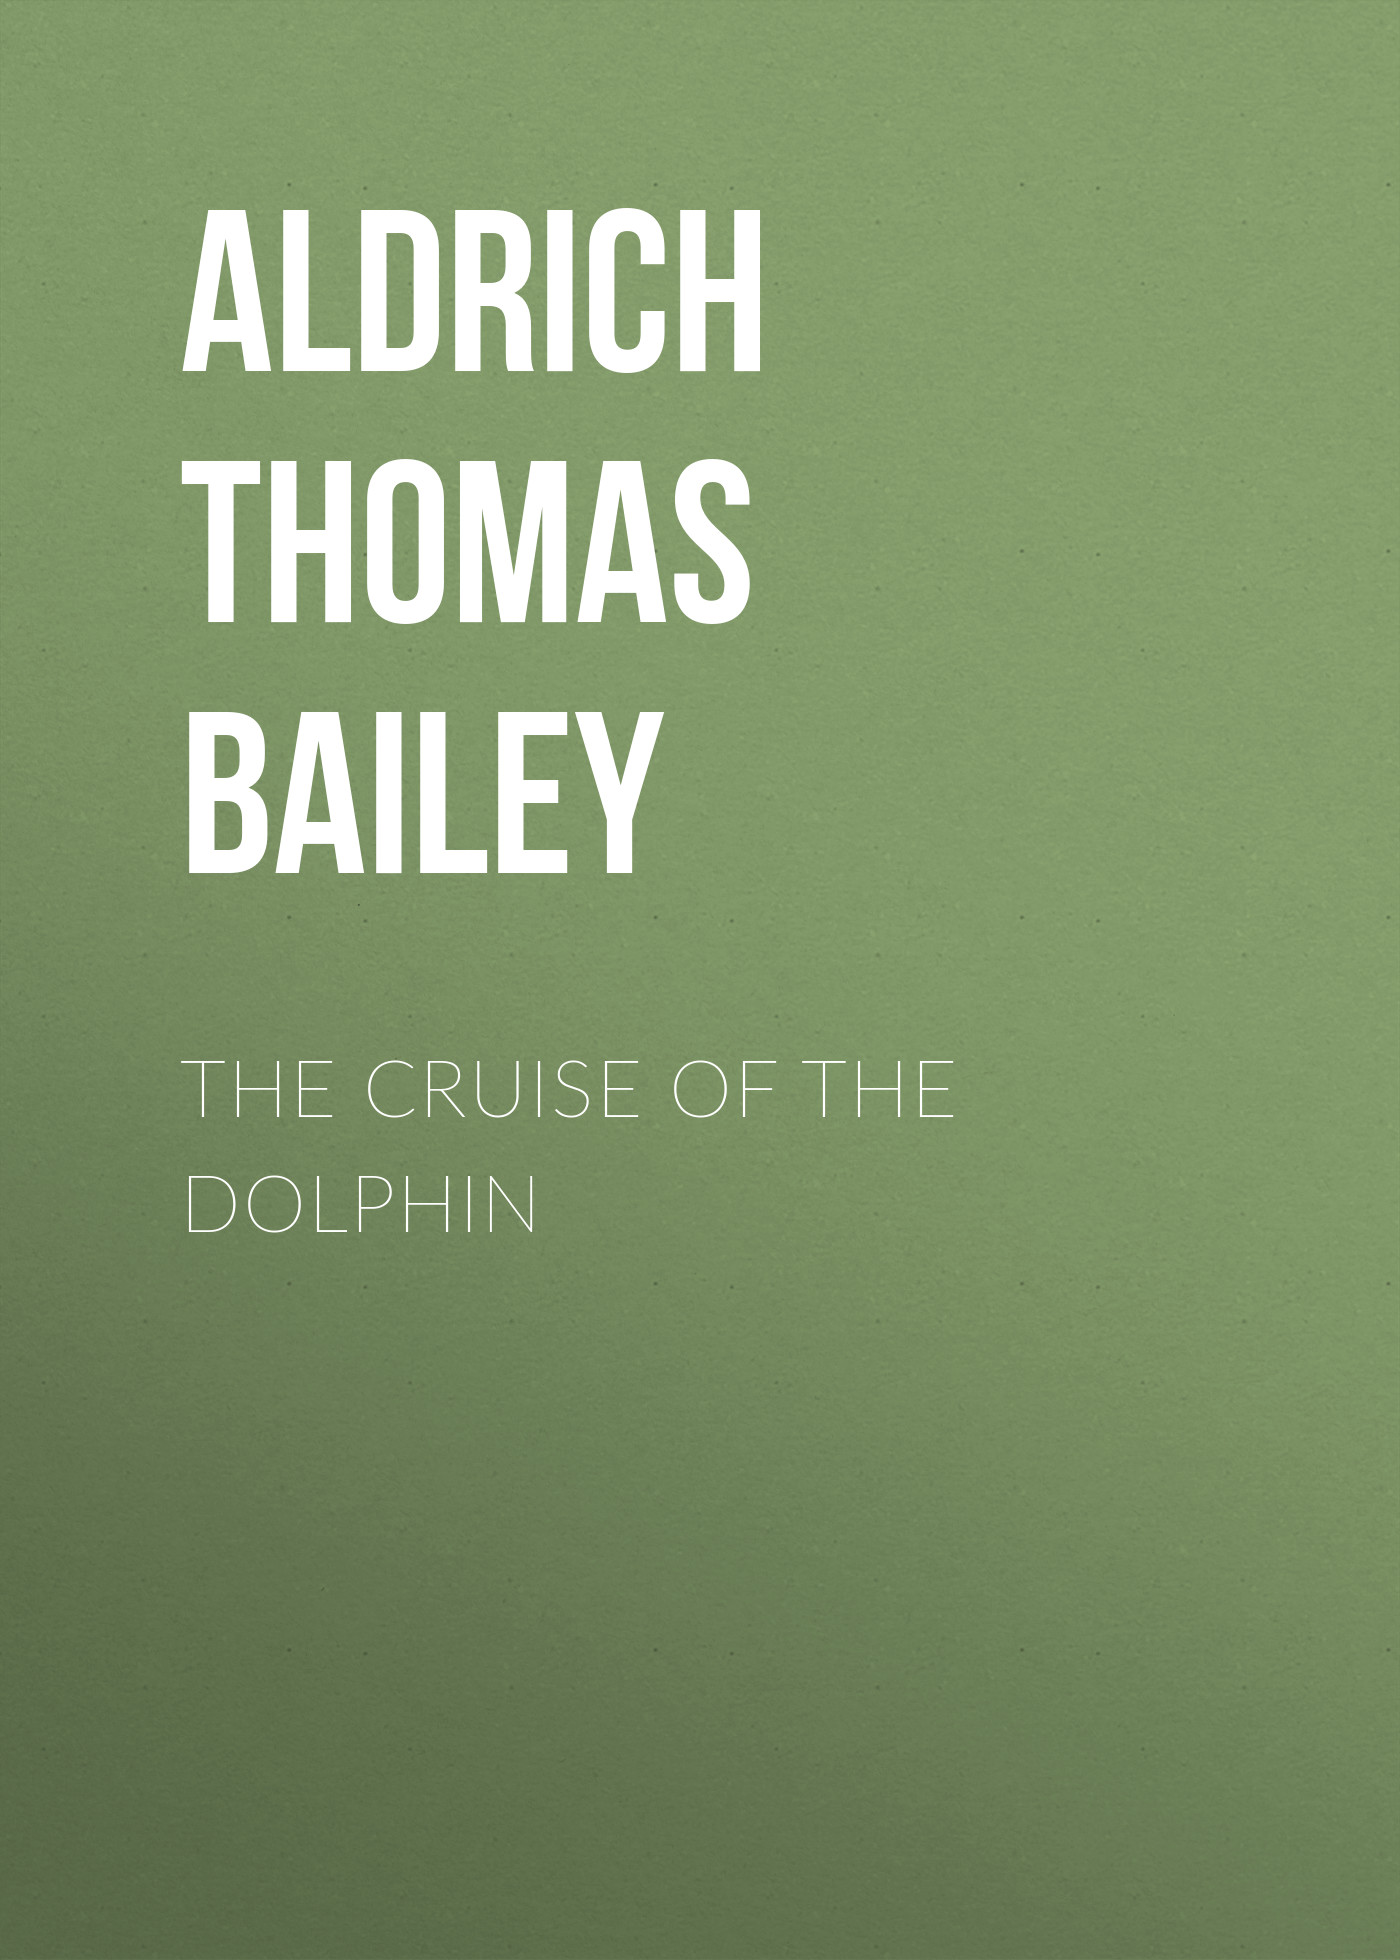 Aldrich Thomas Bailey The Cruise of the Dolphin henry aldrich the rudiments of the art of logic literally tr from the text of aldrich with explanatory notes